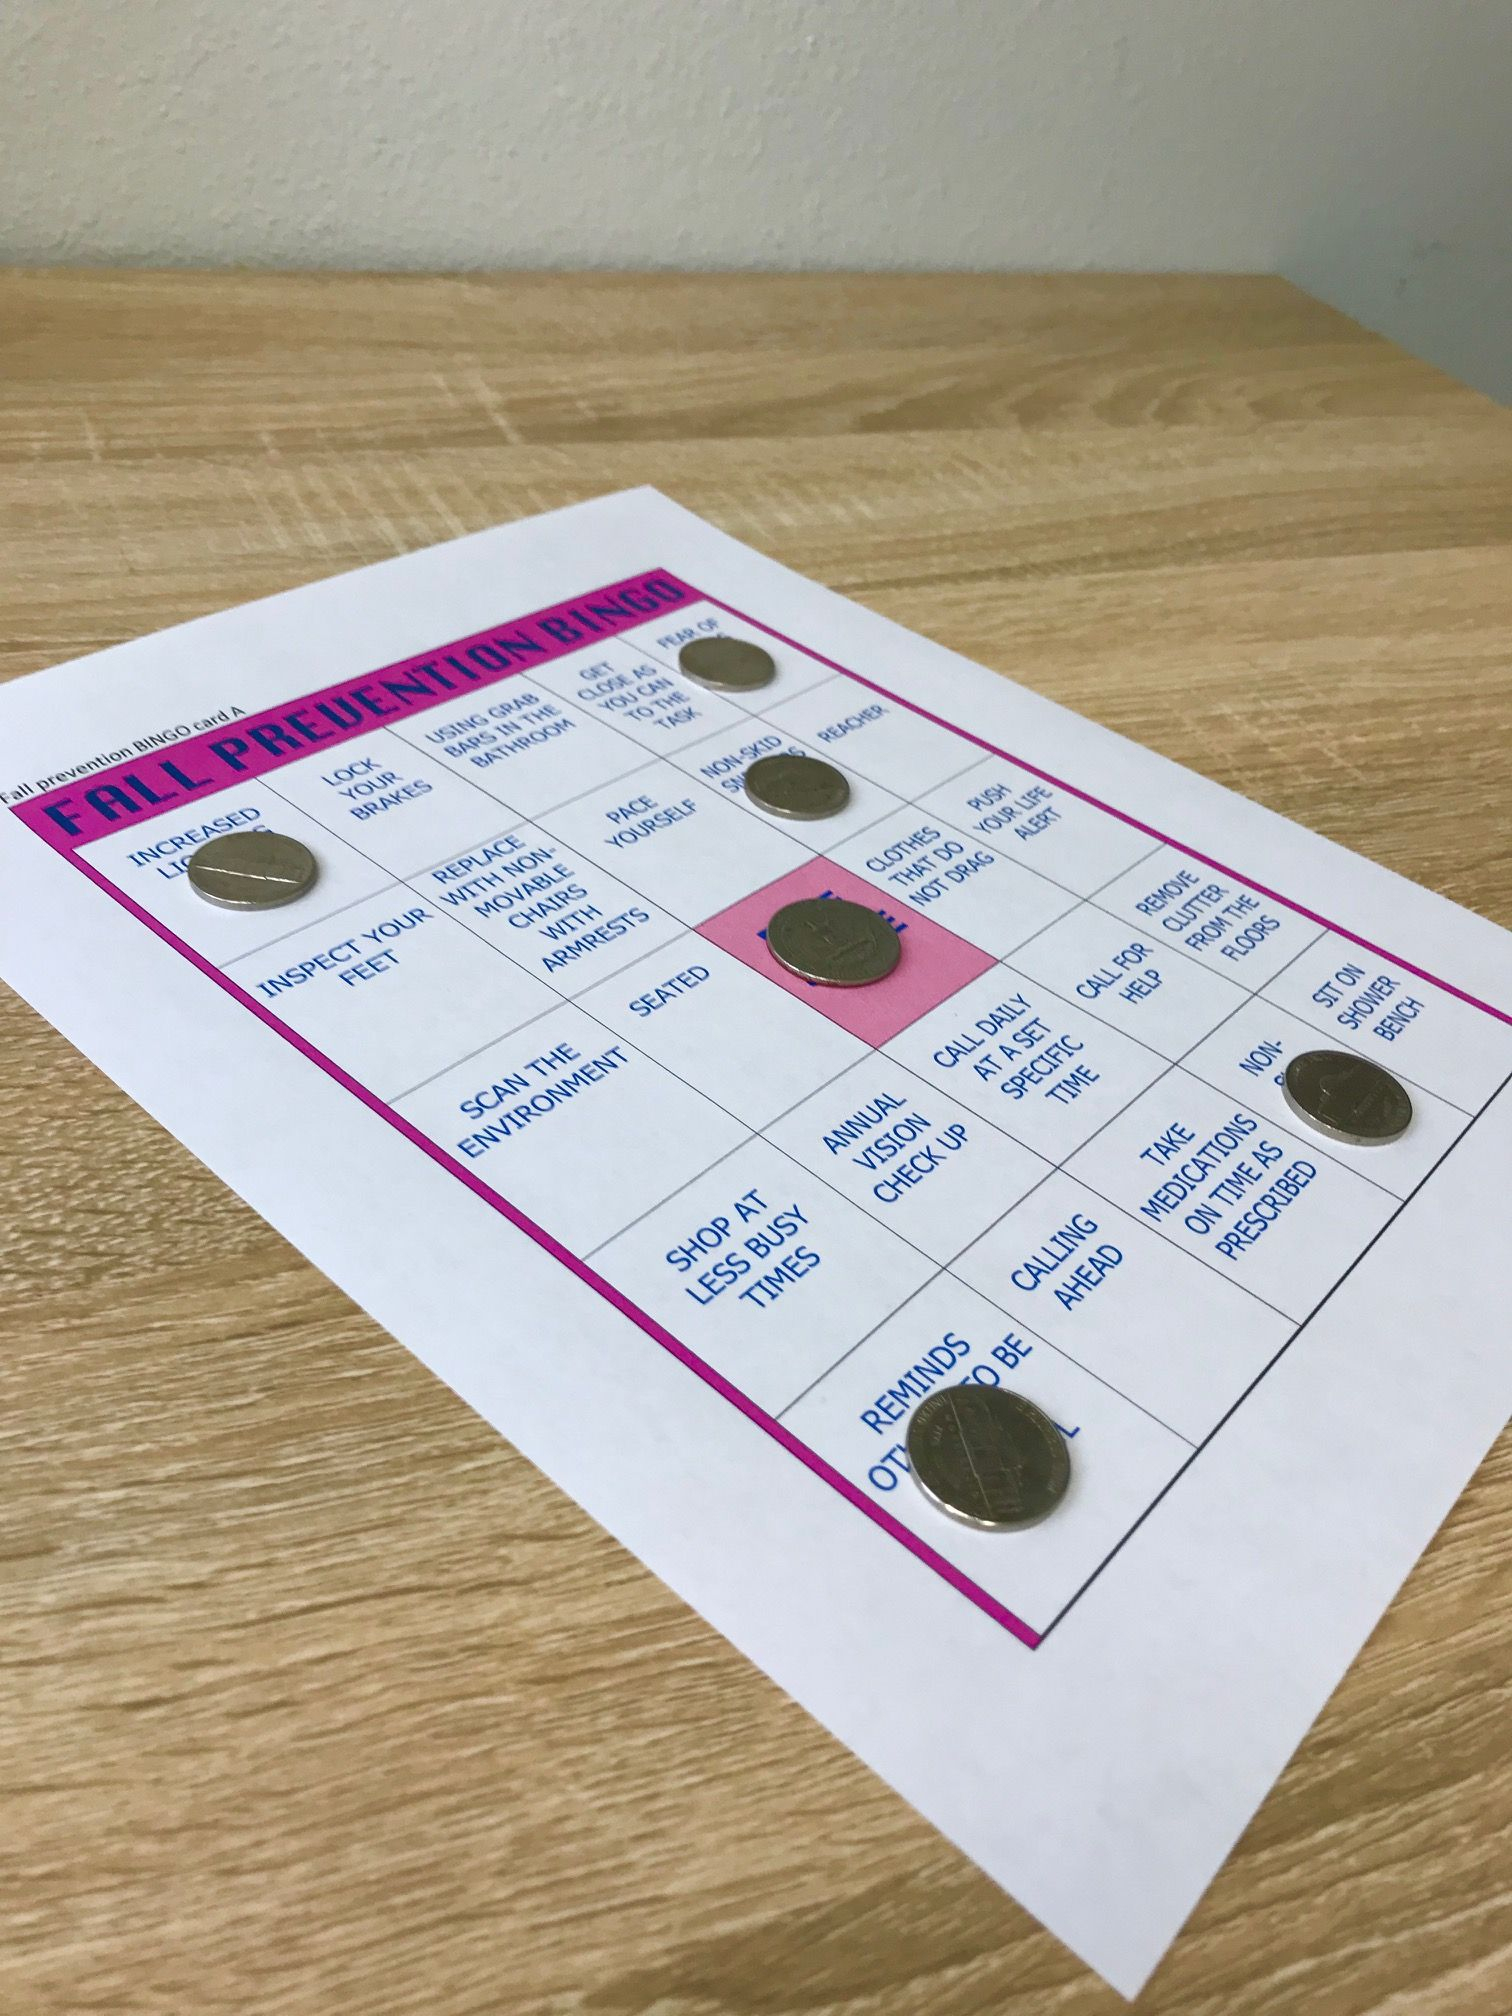 How To Make Your Own Fall Prevention Bingo Game   Bingo